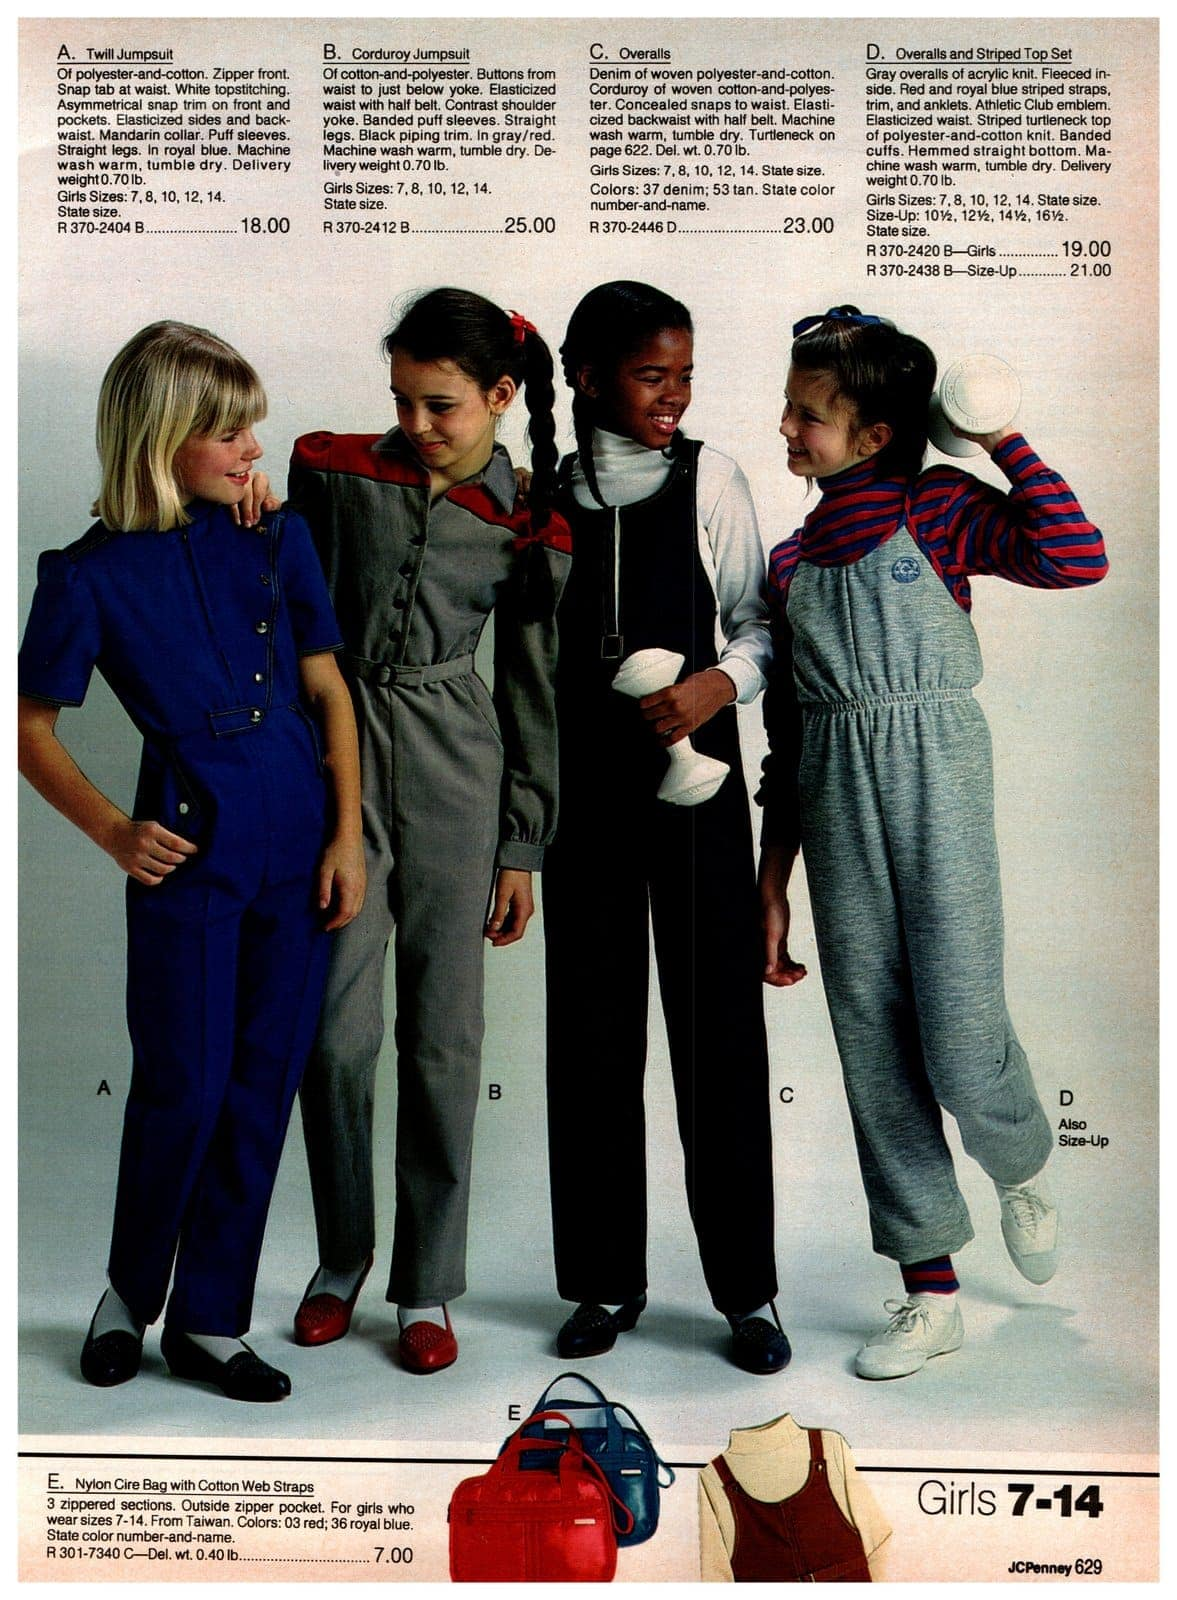 Twill jumpsuits, corduroy jumpsuits, overalls and an overall-striped top set